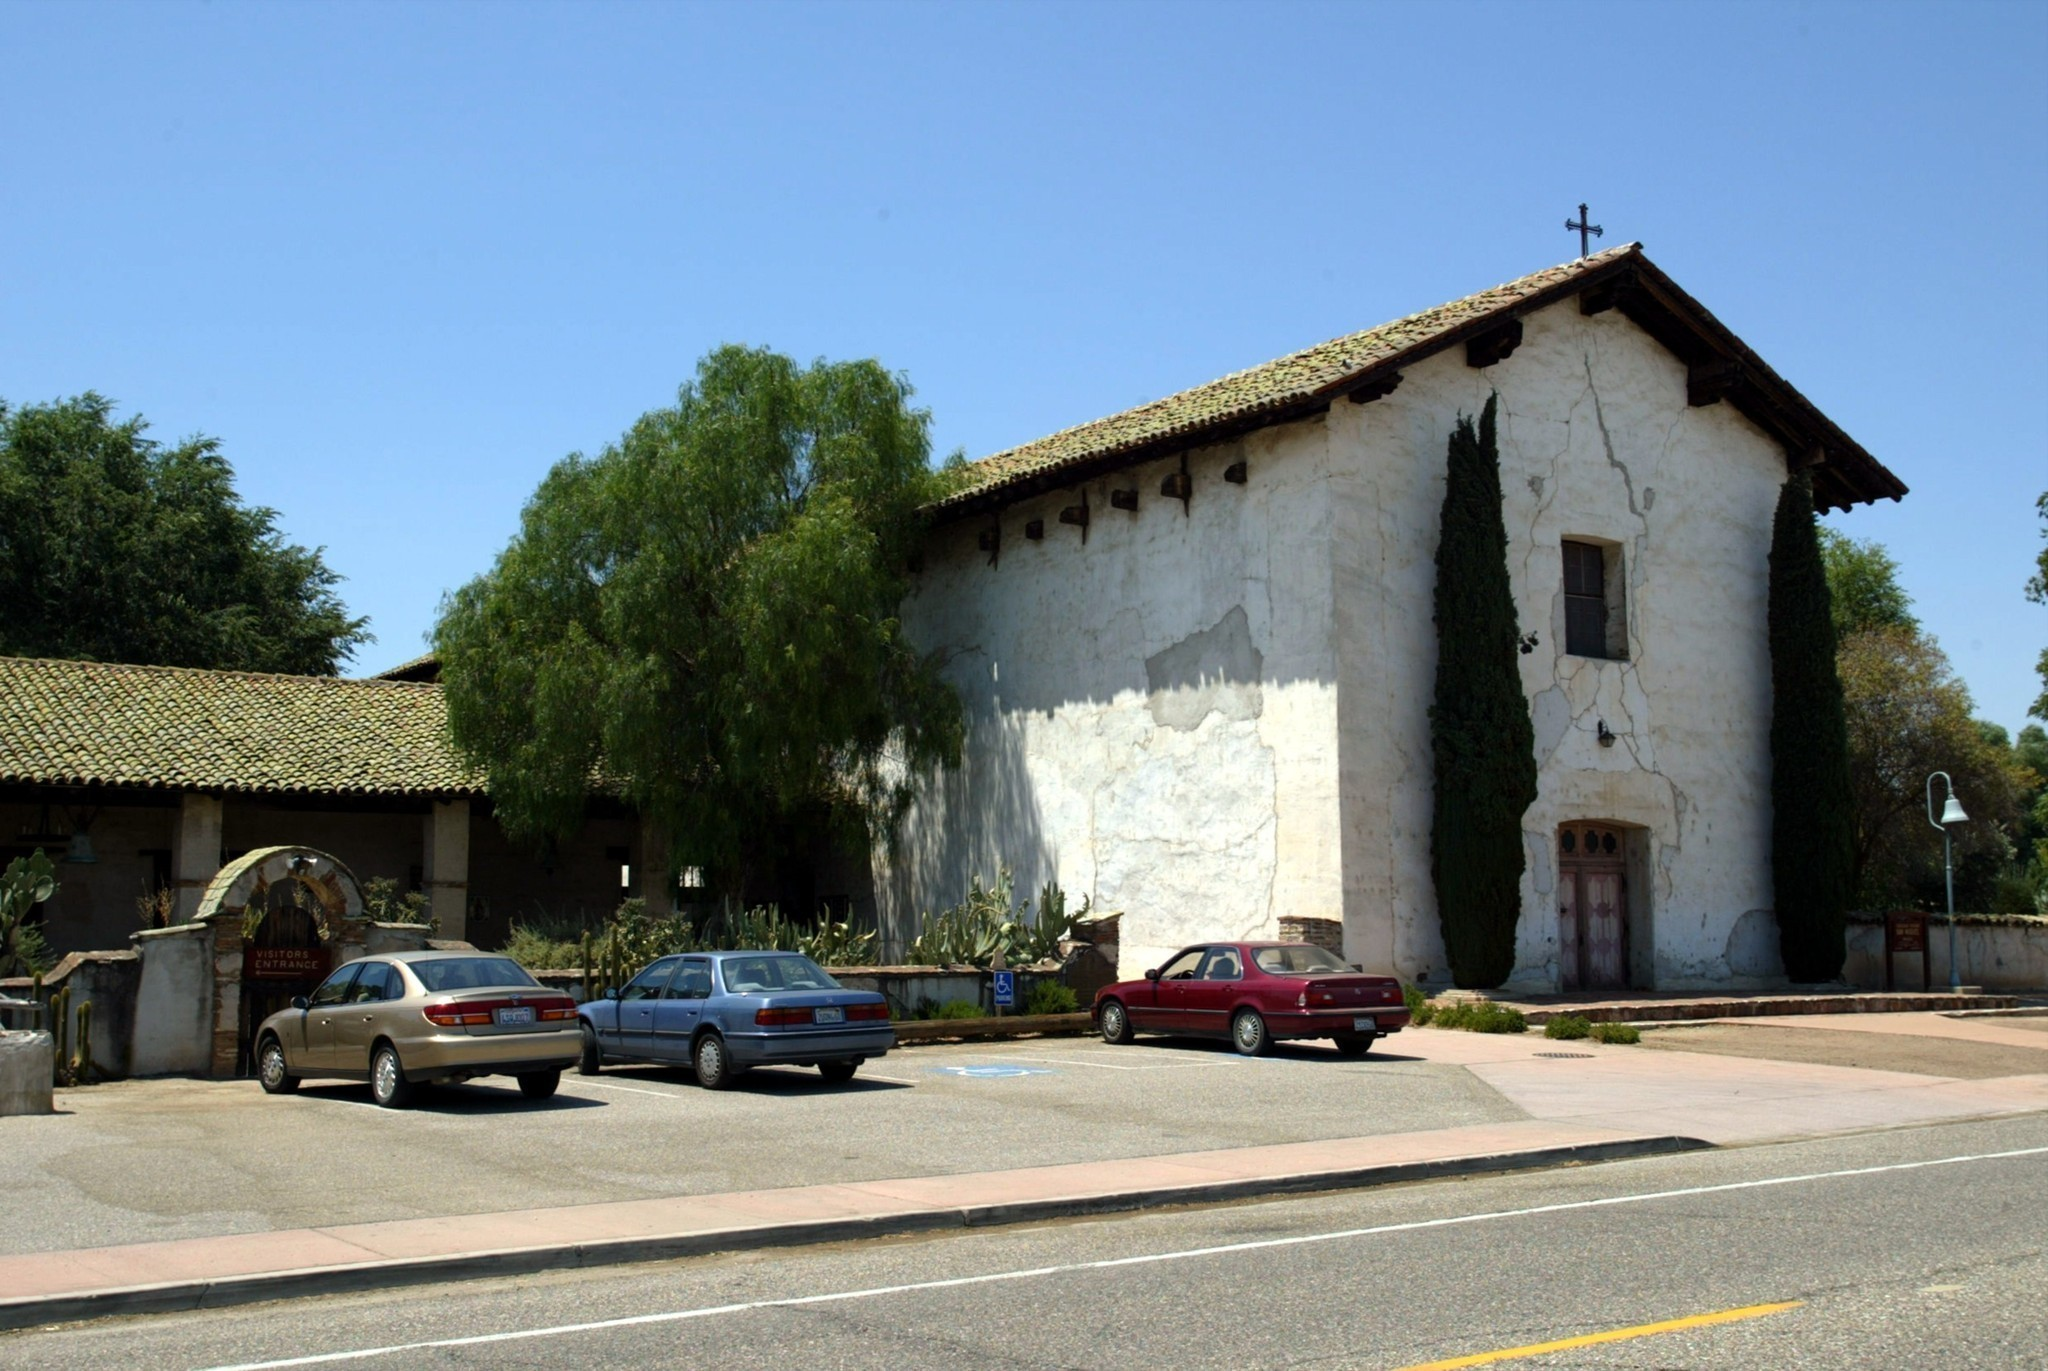 California Missions Spotlight Notorious Mass Murder At